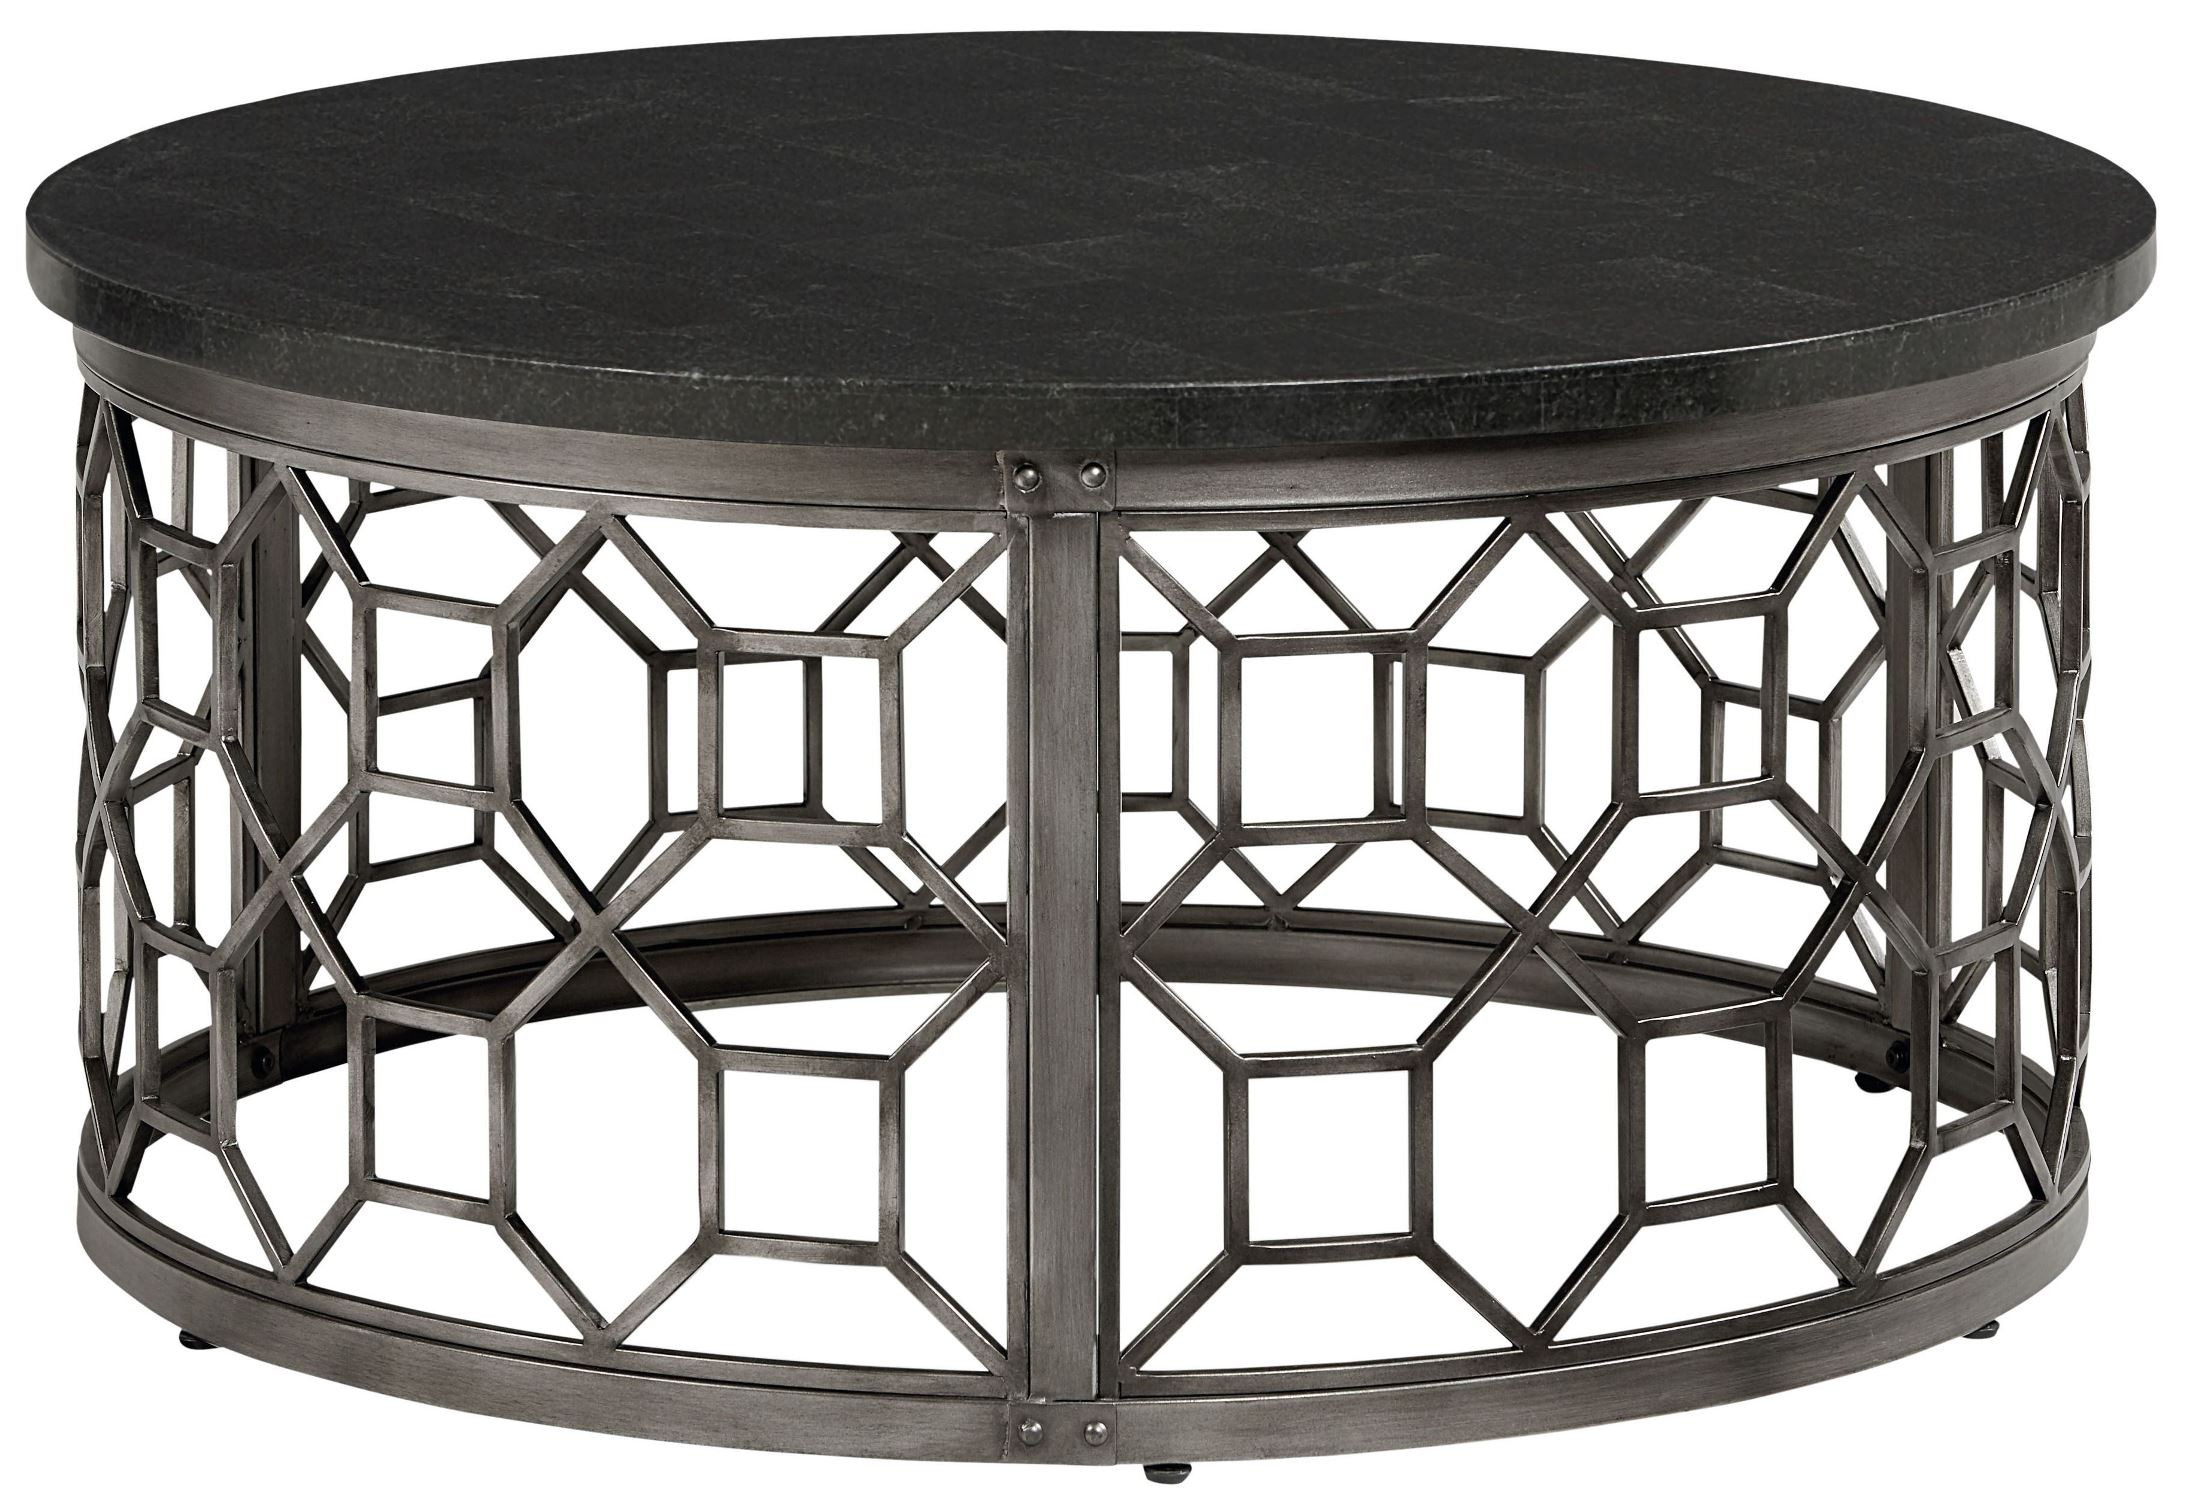 equinox round stone top cocktail table 28921 2028921 standard furniture. Black Bedroom Furniture Sets. Home Design Ideas